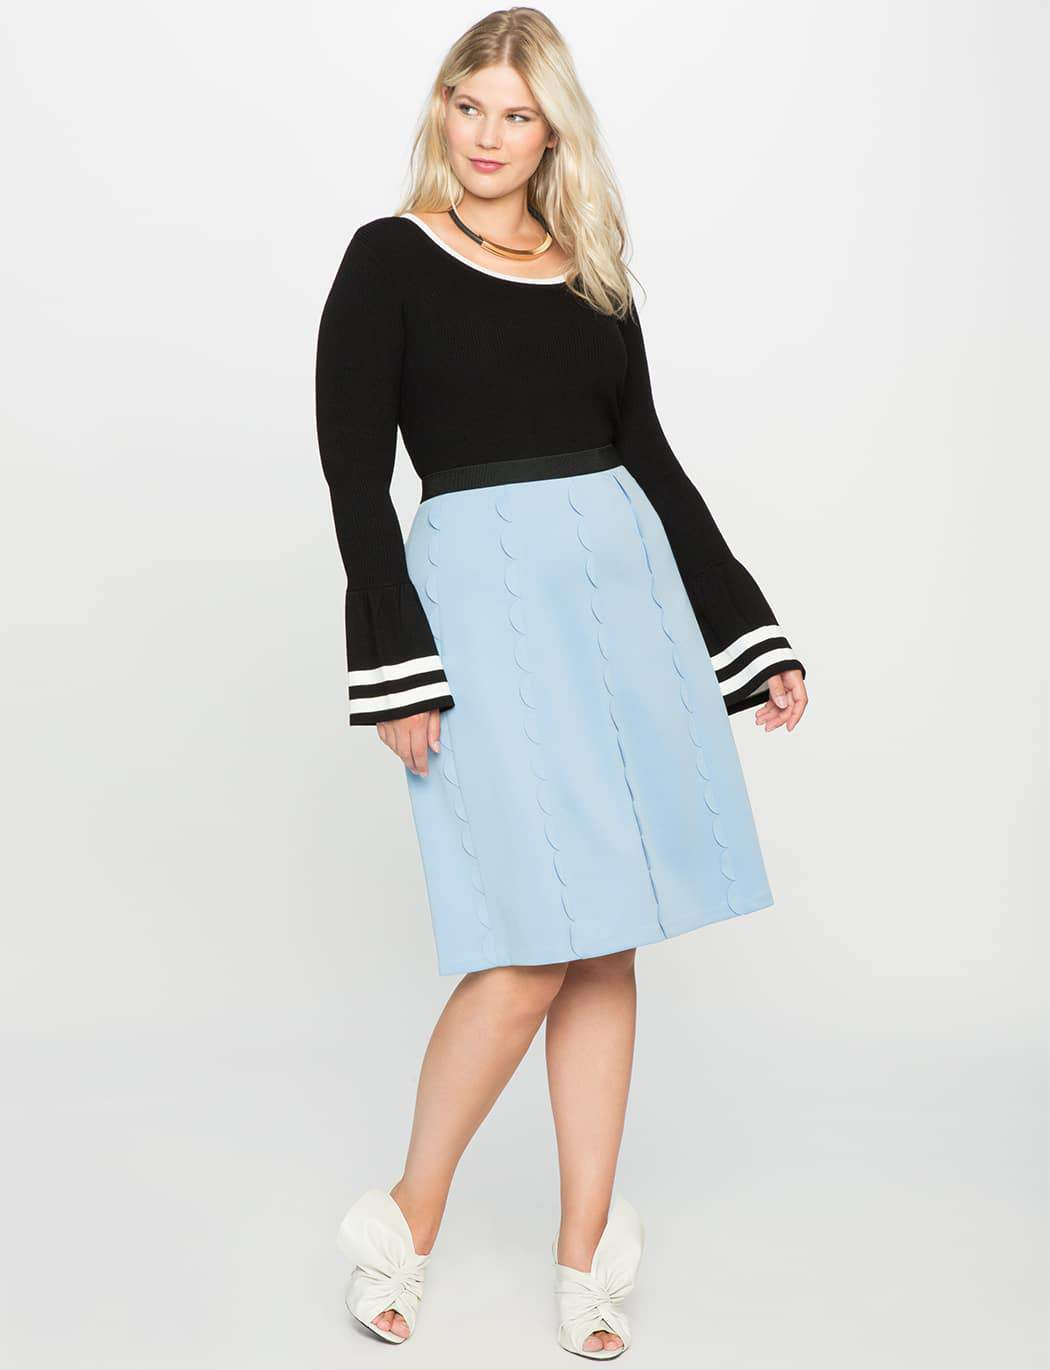 Plus Size Studio Scalloped Skirt at Eloquii